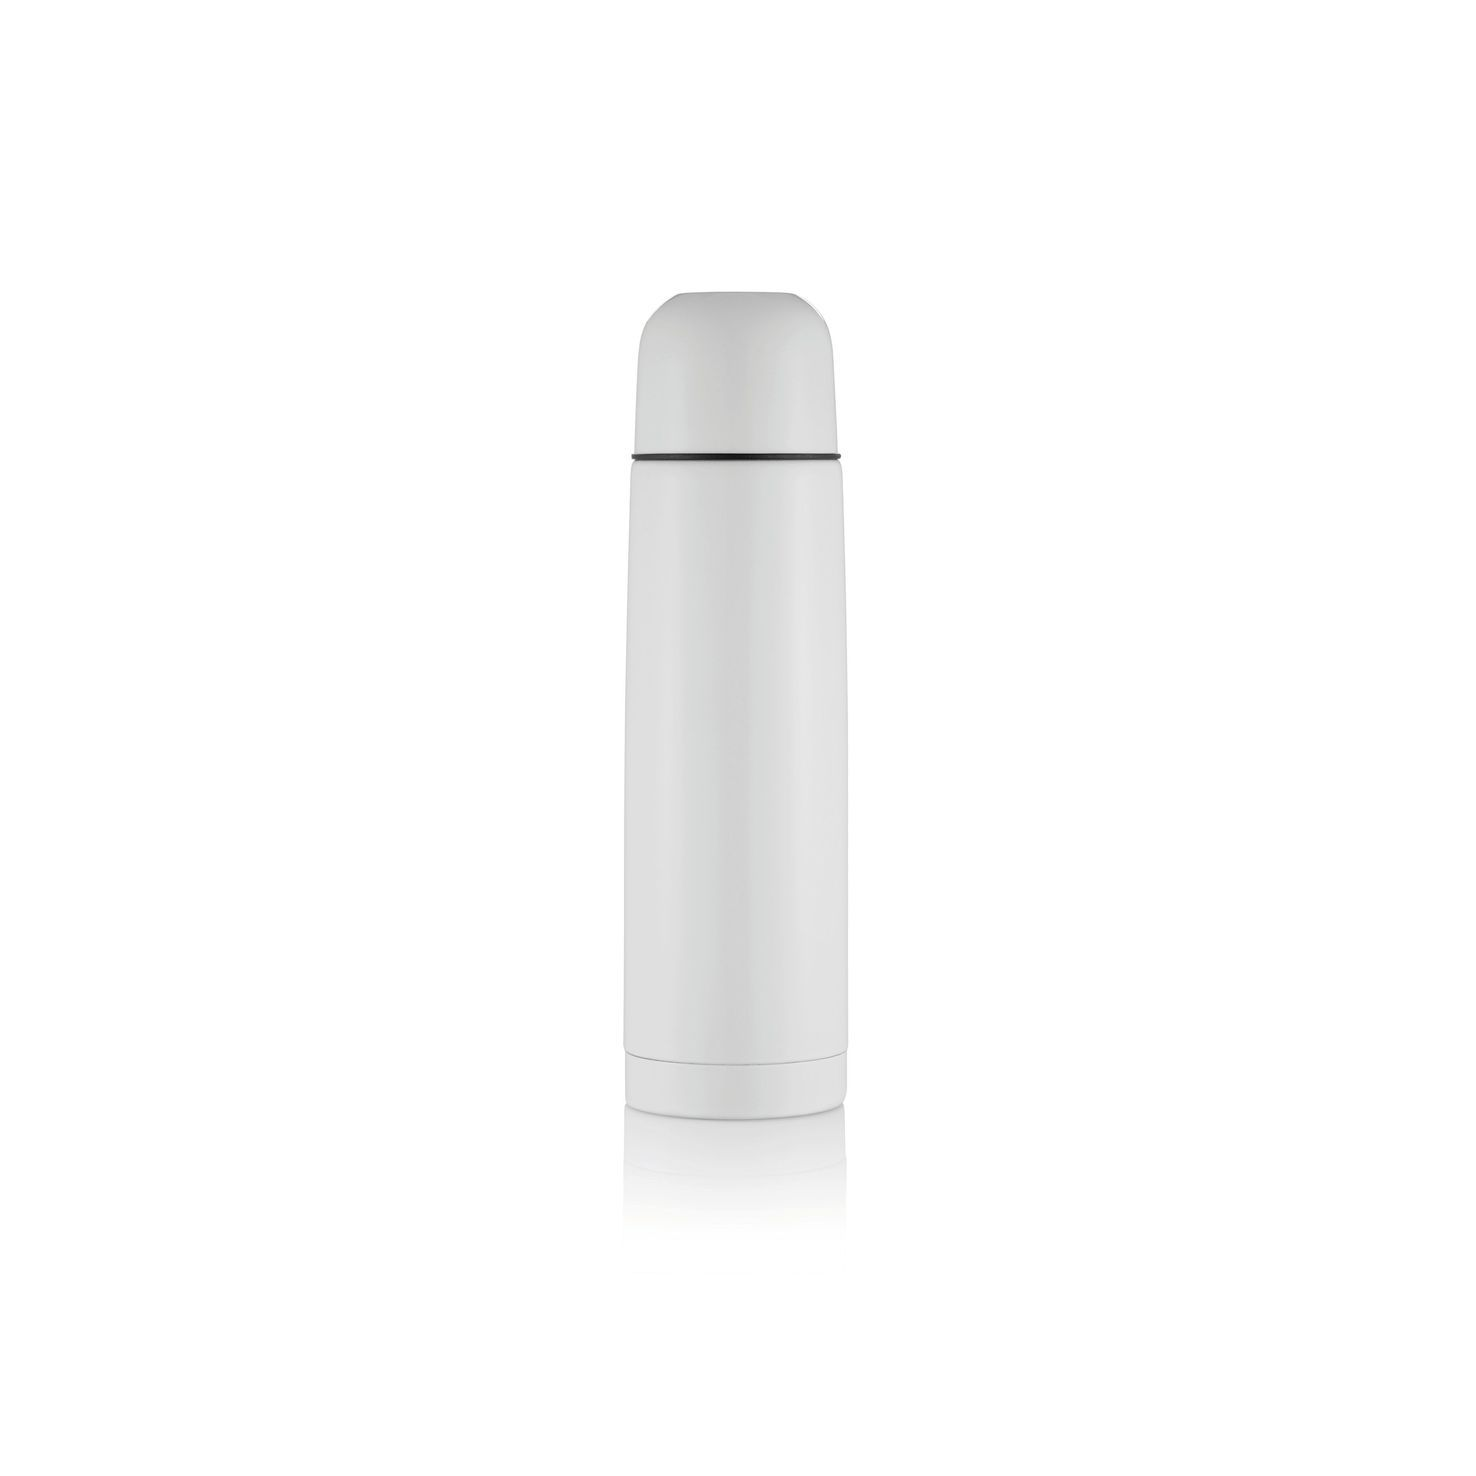 Witte Thermosfles bedrukken | 500 ml